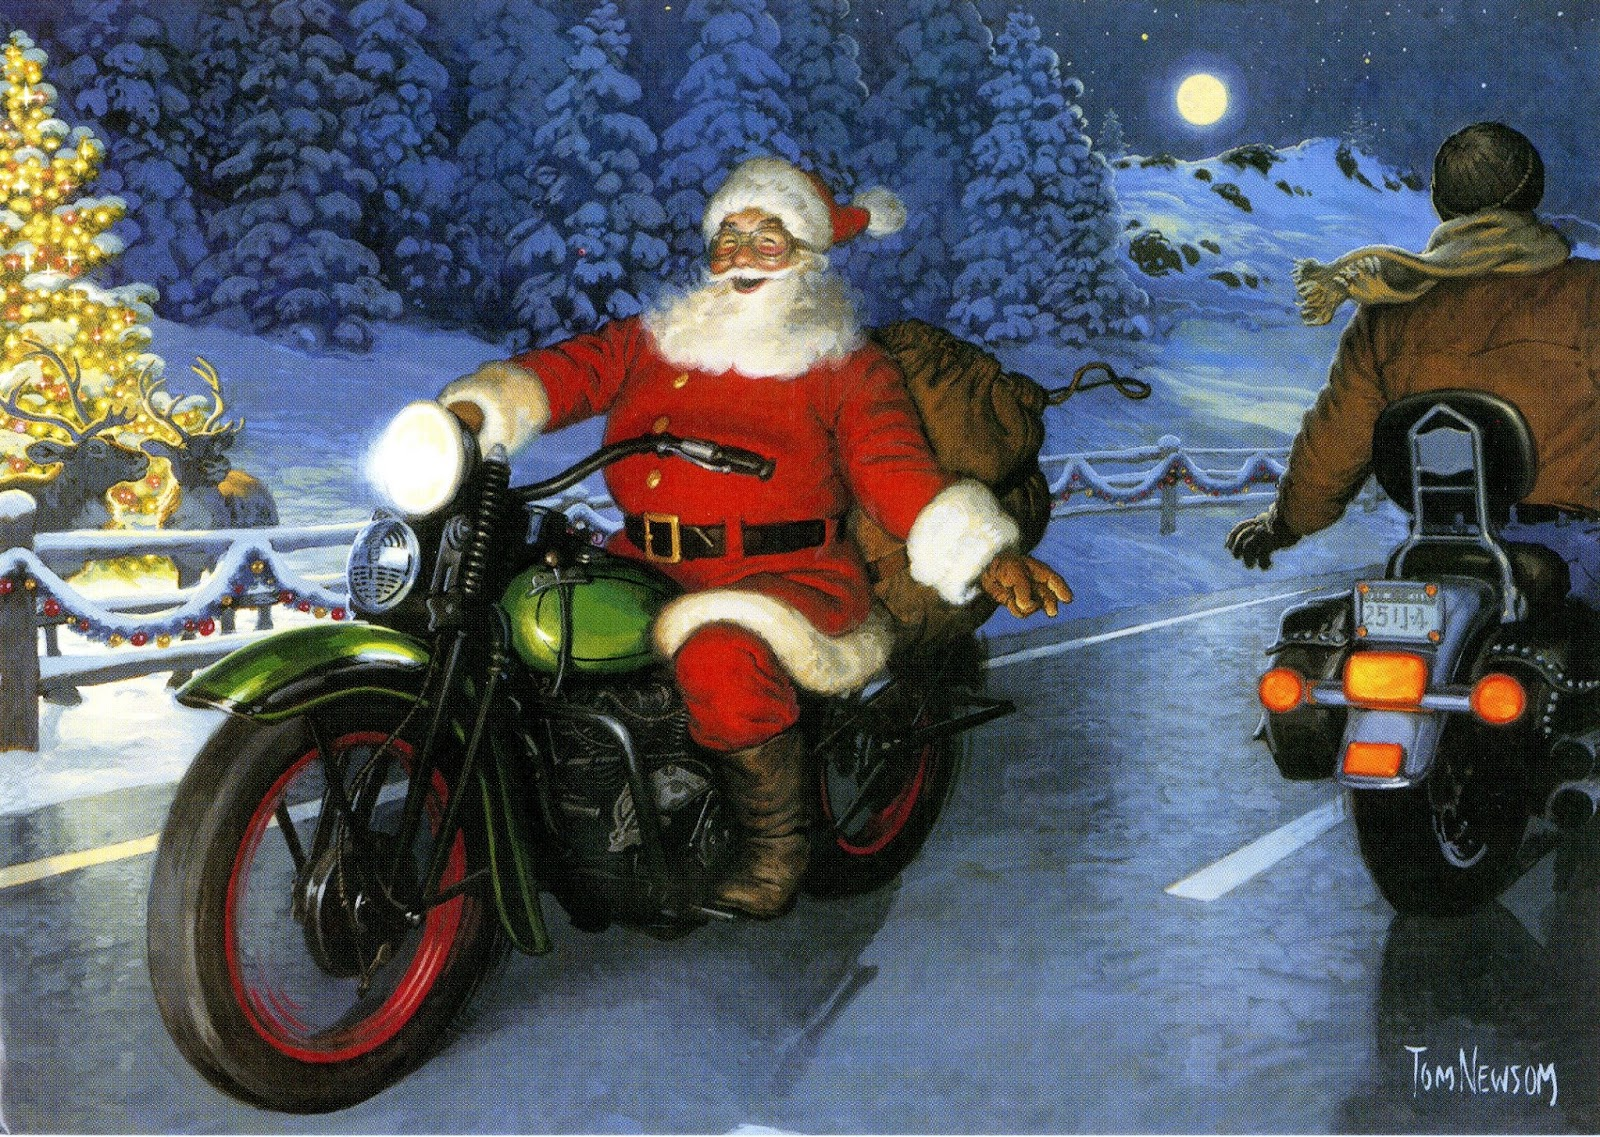 merry christmas victory forums victory motorcycle. Black Bedroom Furniture Sets. Home Design Ideas